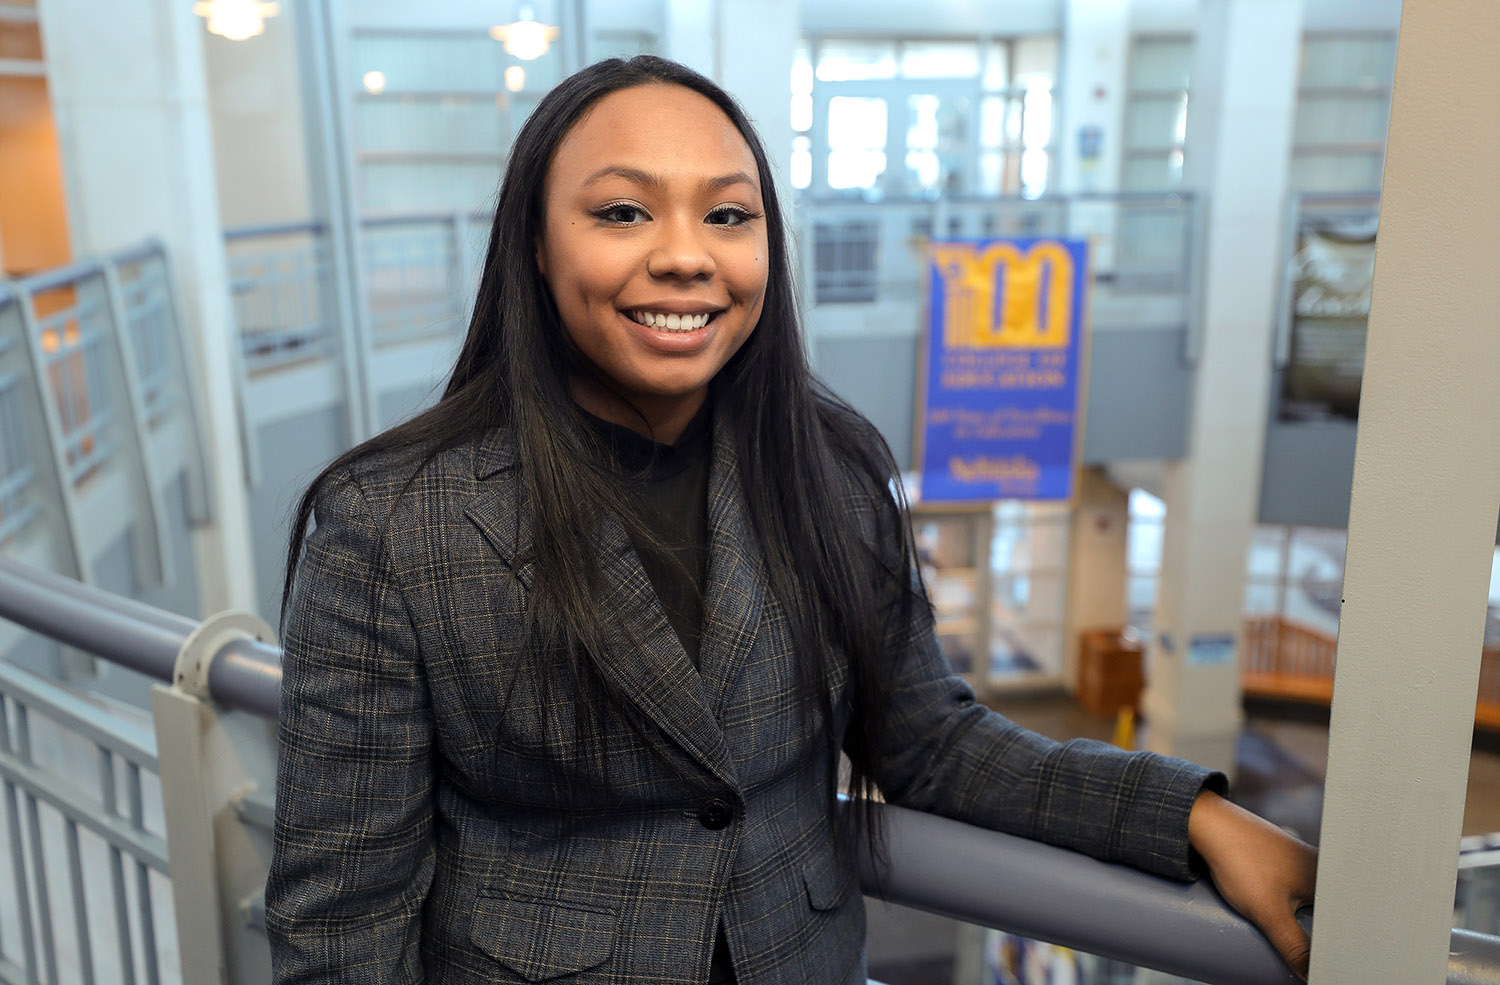 Asianna Harris is a master's student and graduate assistant in UNK's Department of Counseling and School Psychology, as well as a member of the College of Education's Diversity, Equity, Inclusion and Social Justice Committee. (Photo by Erika Pritchard, UNK Communications)